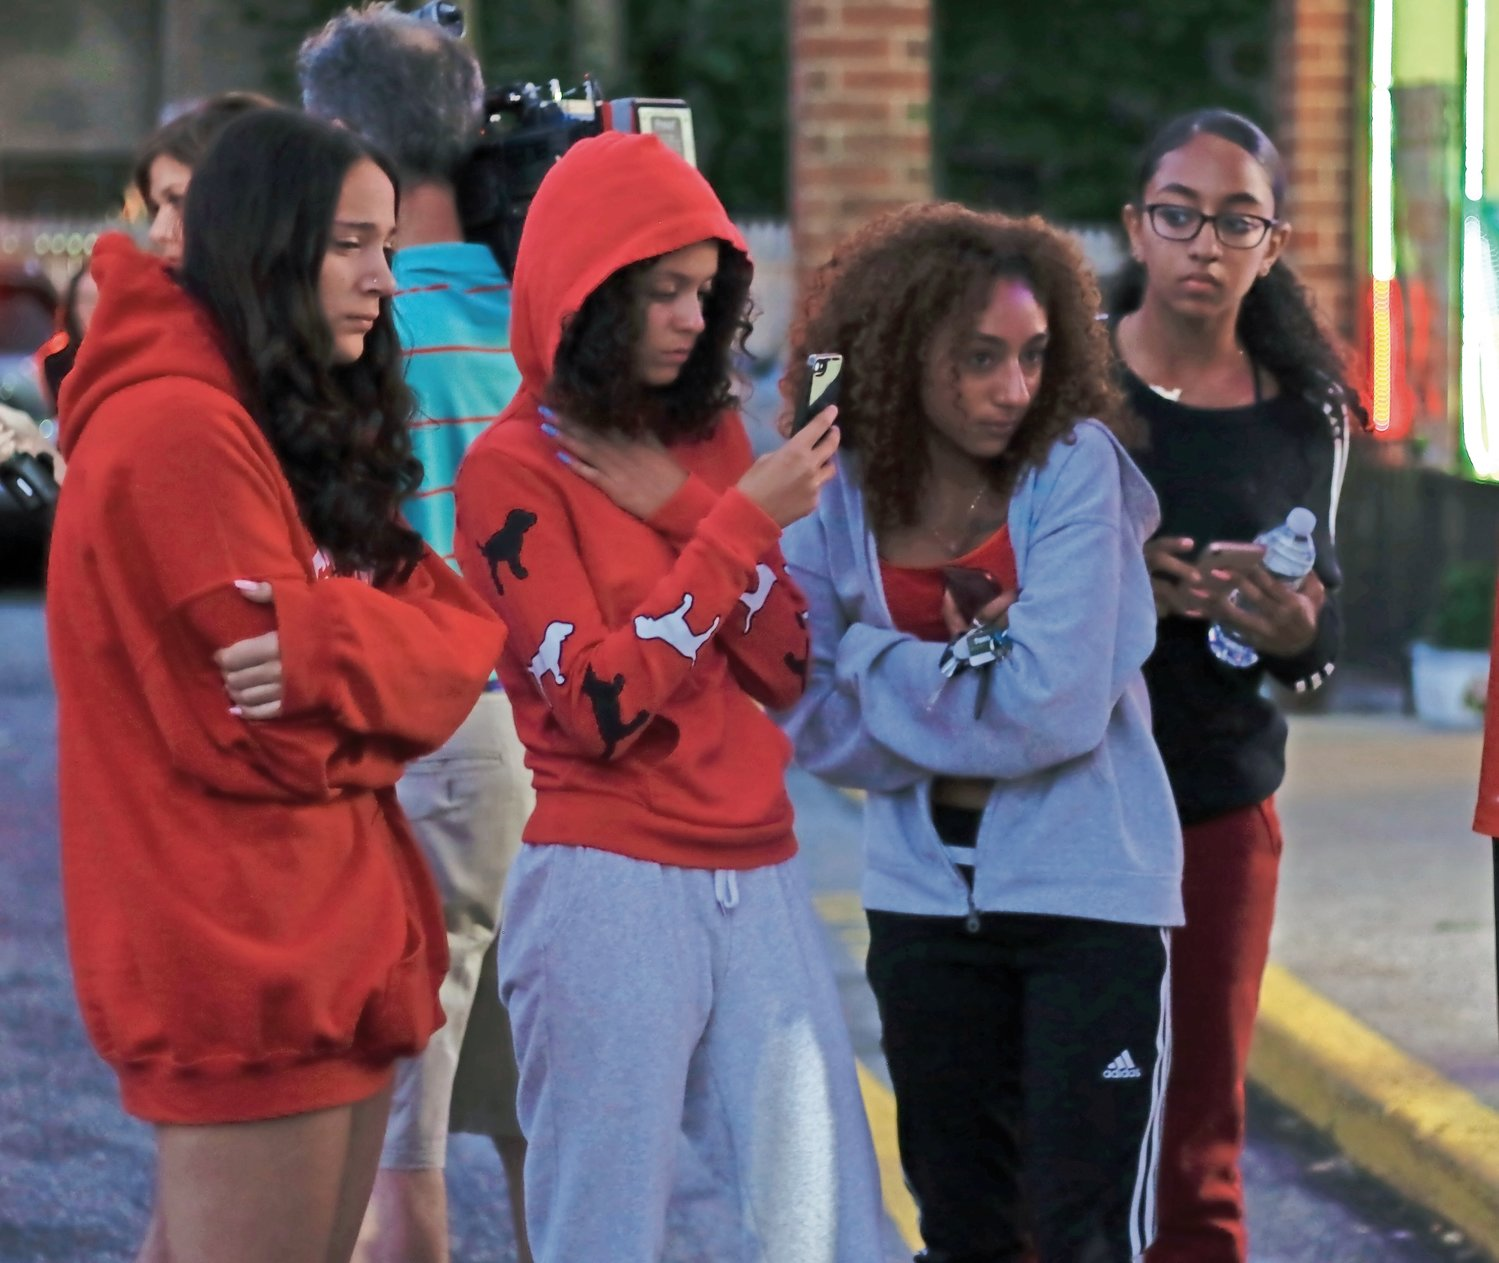 Sophia Emmolo, far left, Leslie Madero and two other friends of Morris's joined the crowd of teens to mourn his death.